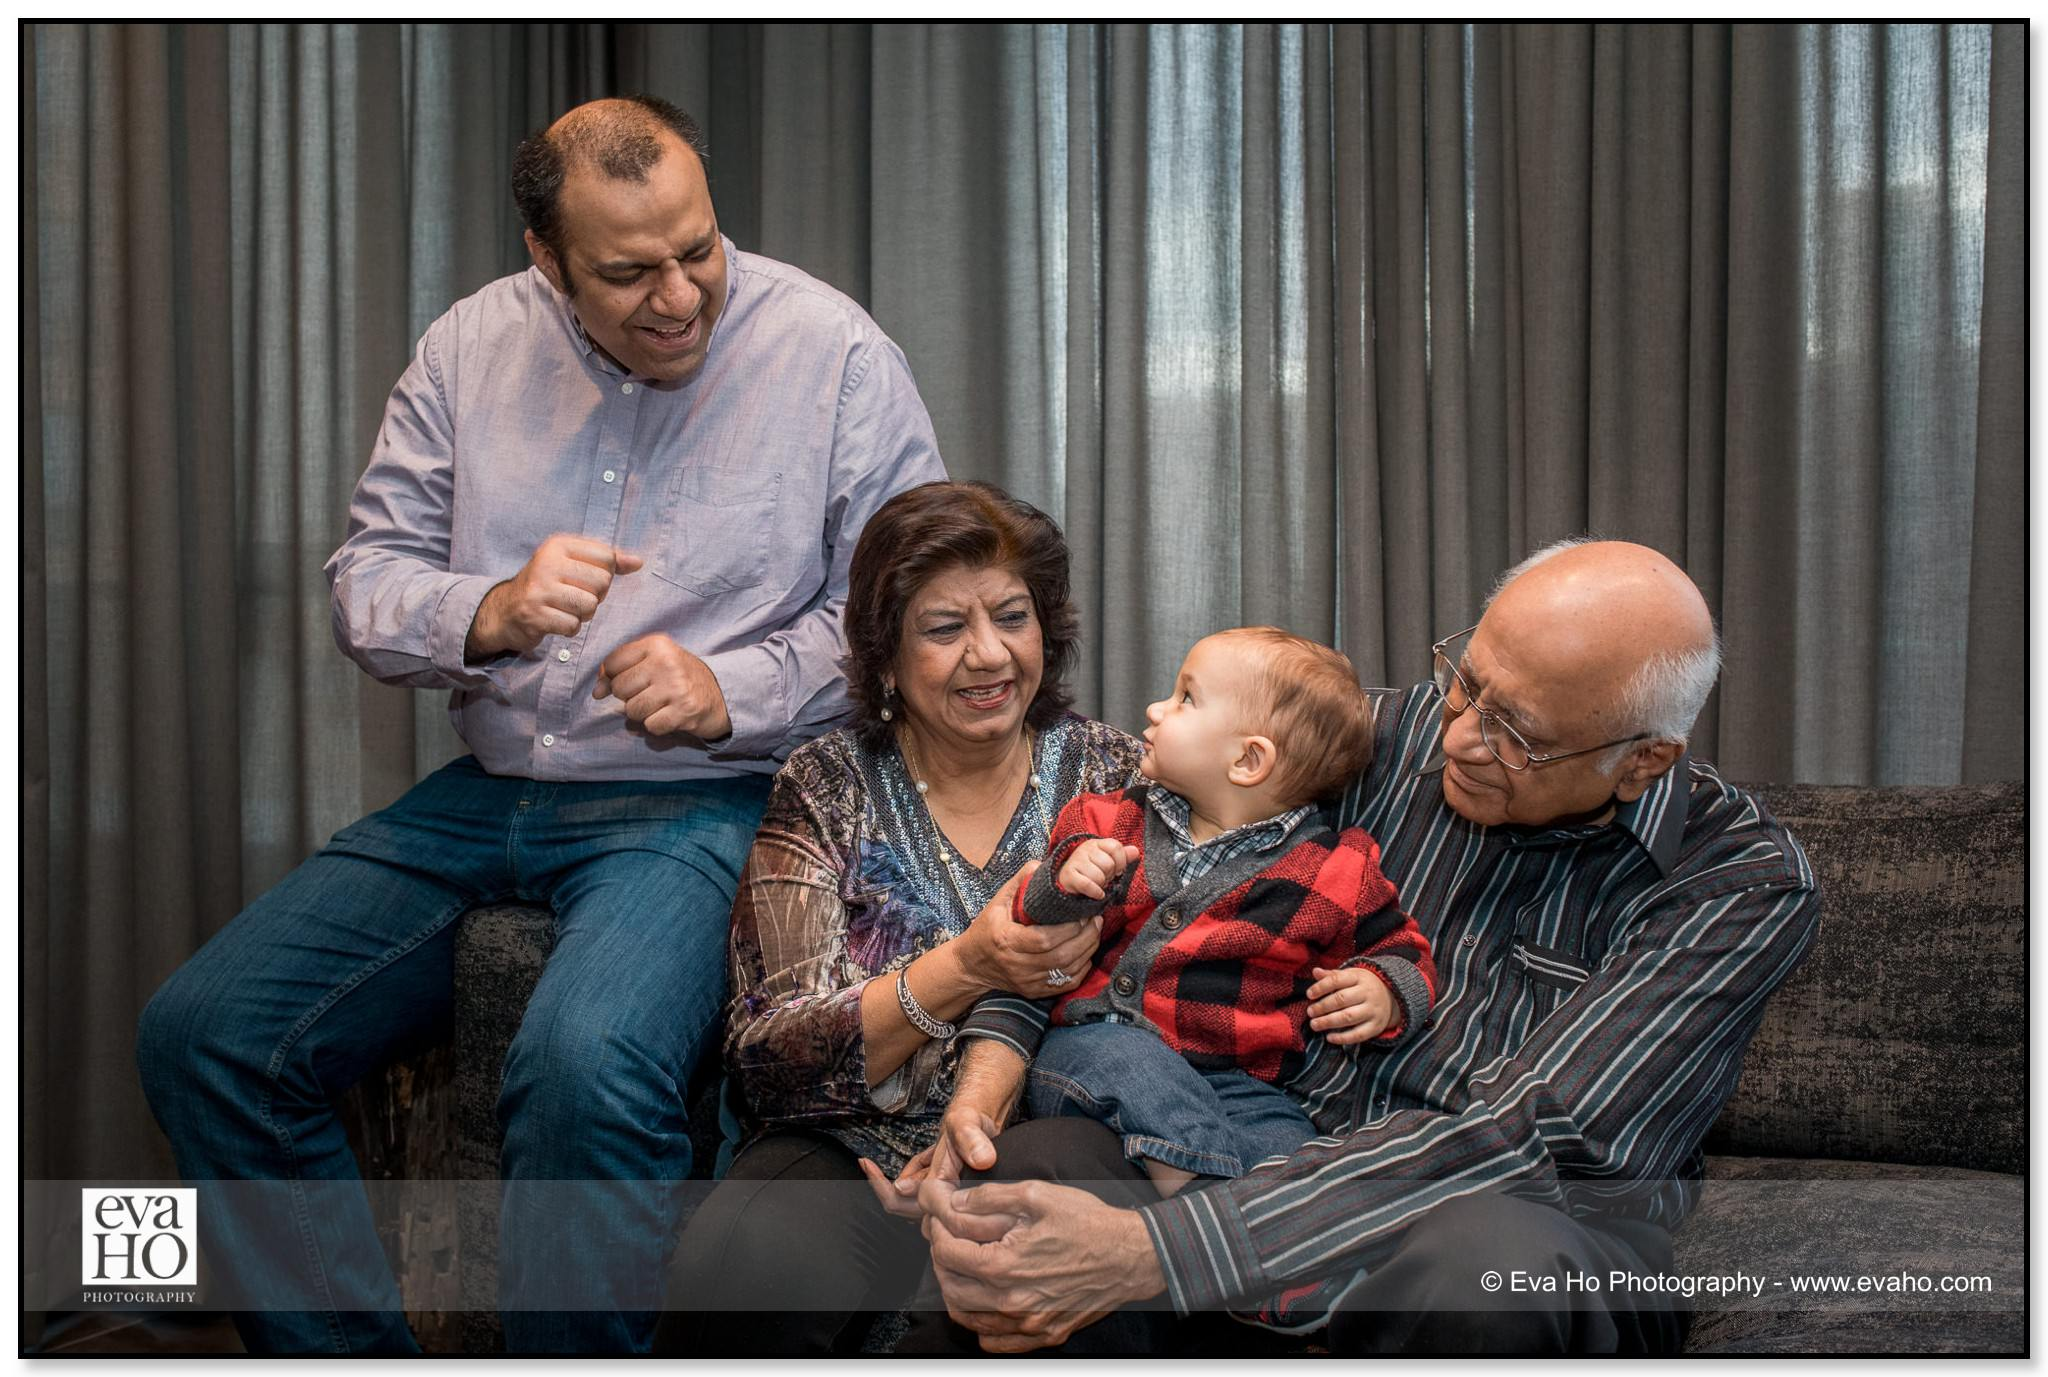 intergenerational family portrait session